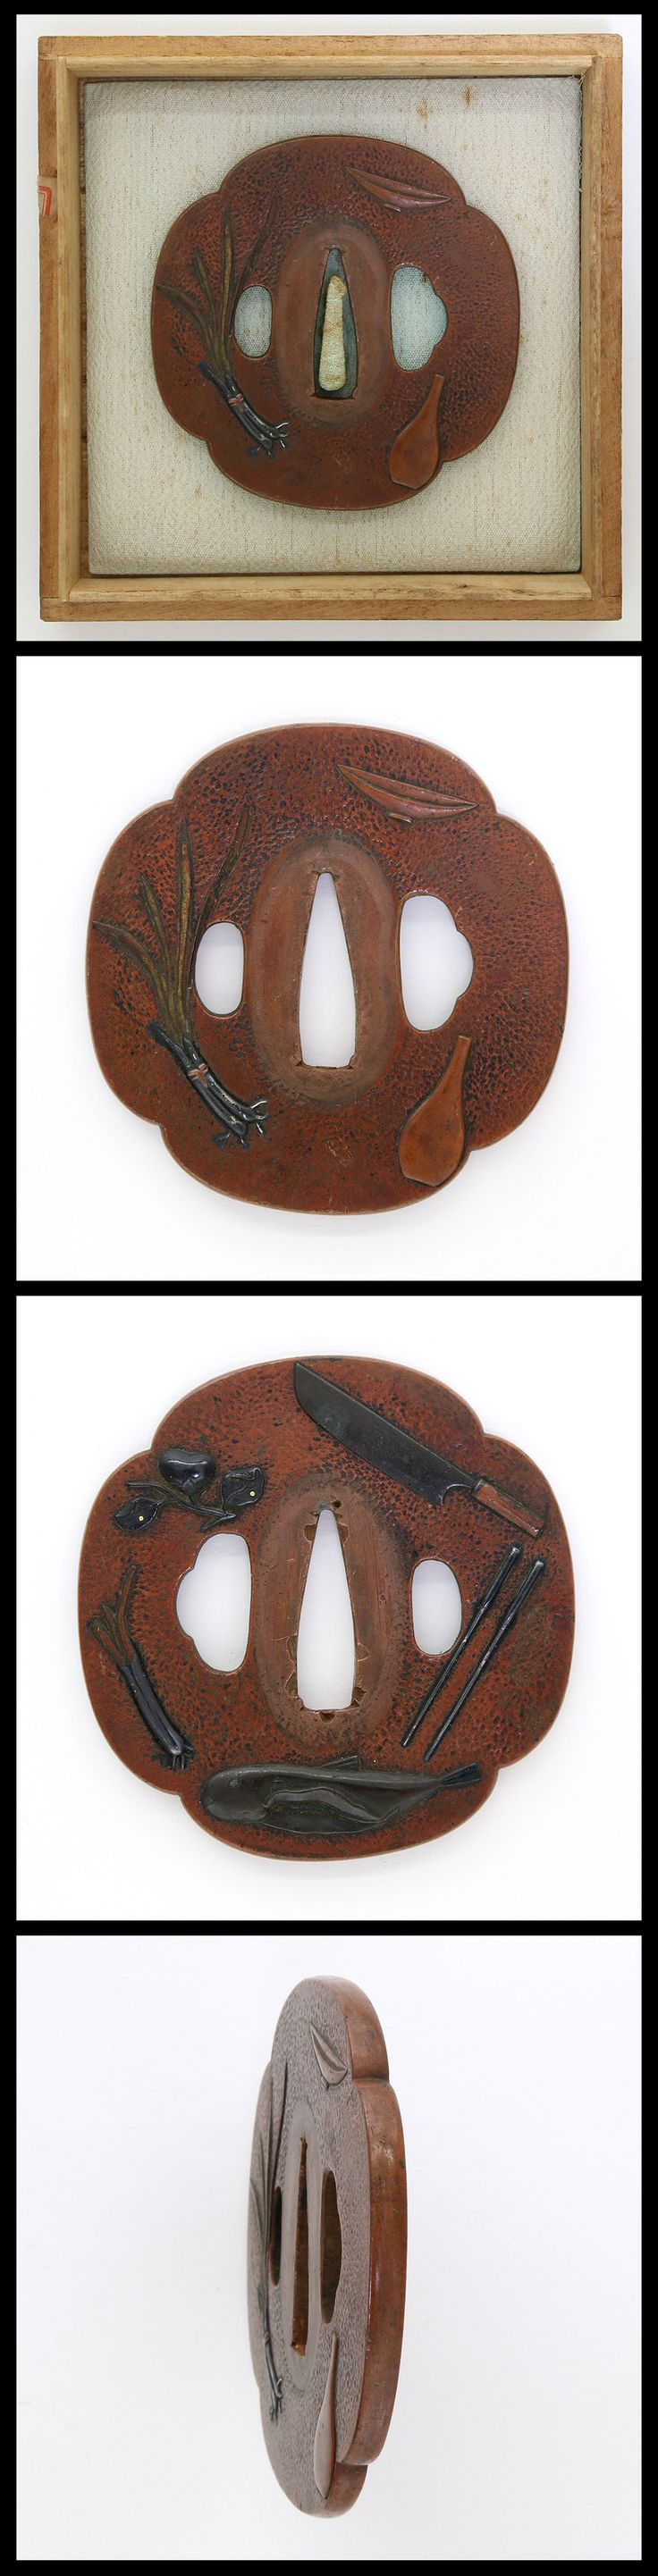 Edo Hocho-do (the way of the cleaver) motif is engraved on Mokko shape Suaka Tsuba. Hocho-do is a Japanese traditional cooking techniques and the manner